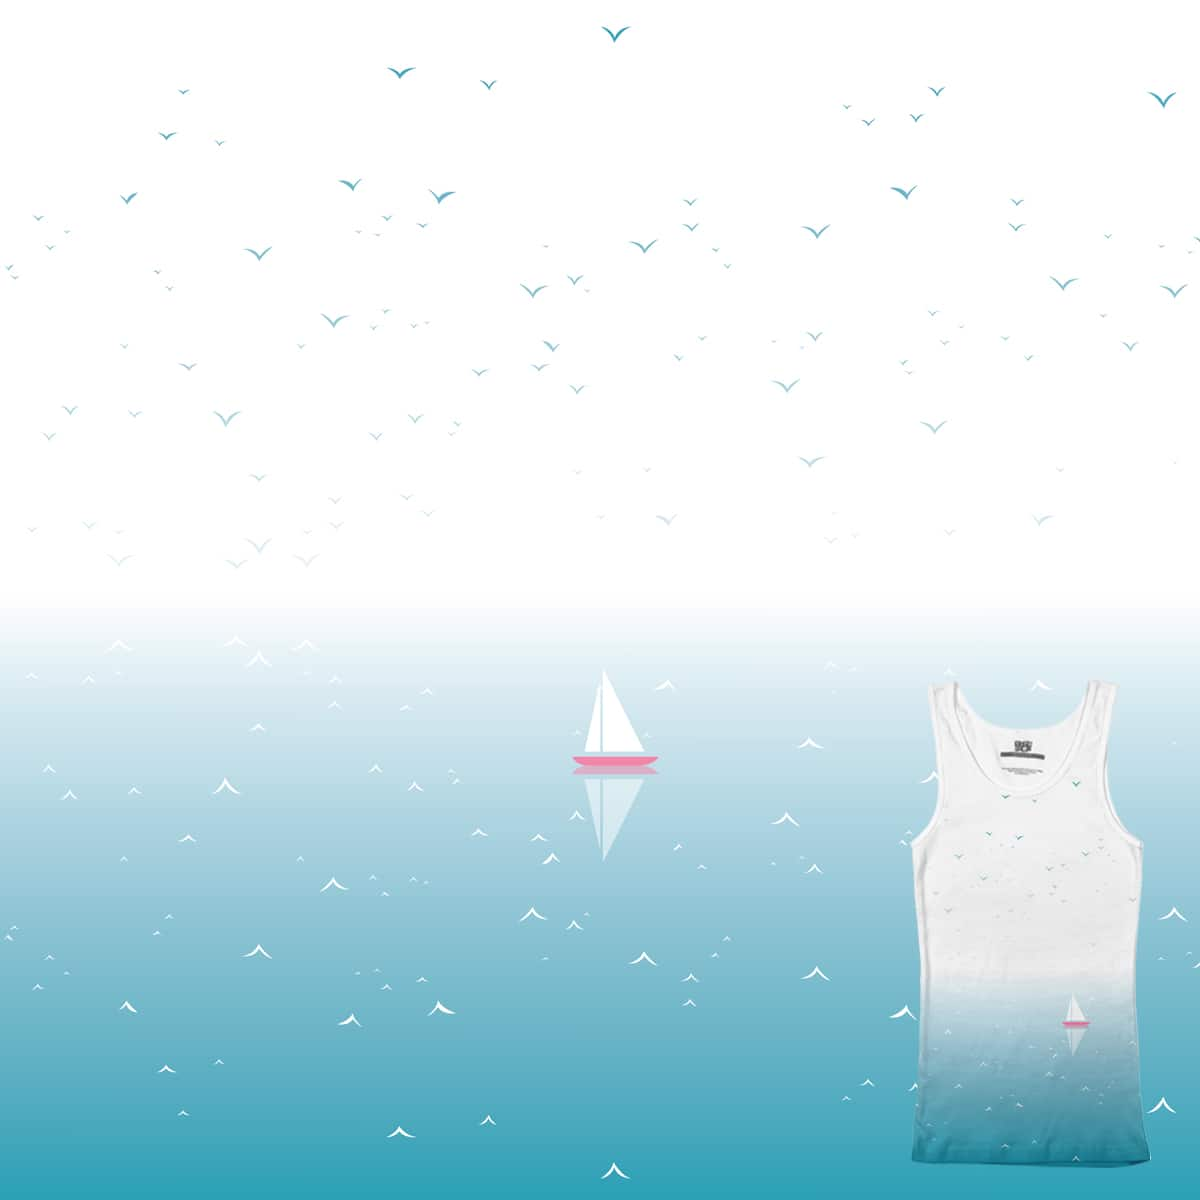 sea / sky by mdim on Threadless